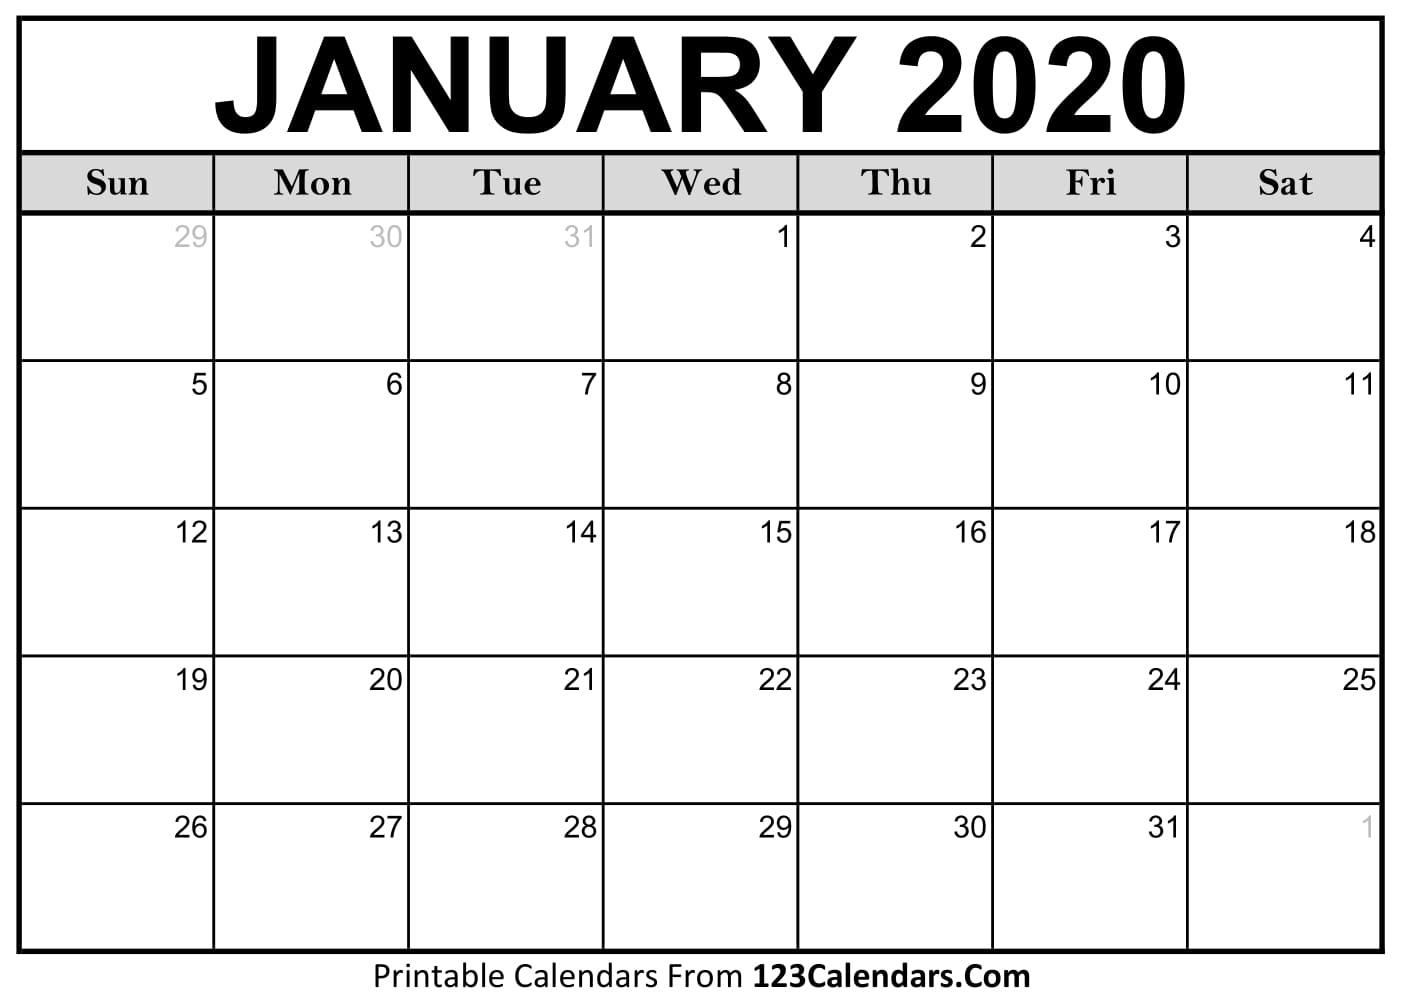 Calendar Sept 2020.January 2020 Printable Calendar 123calendars Com